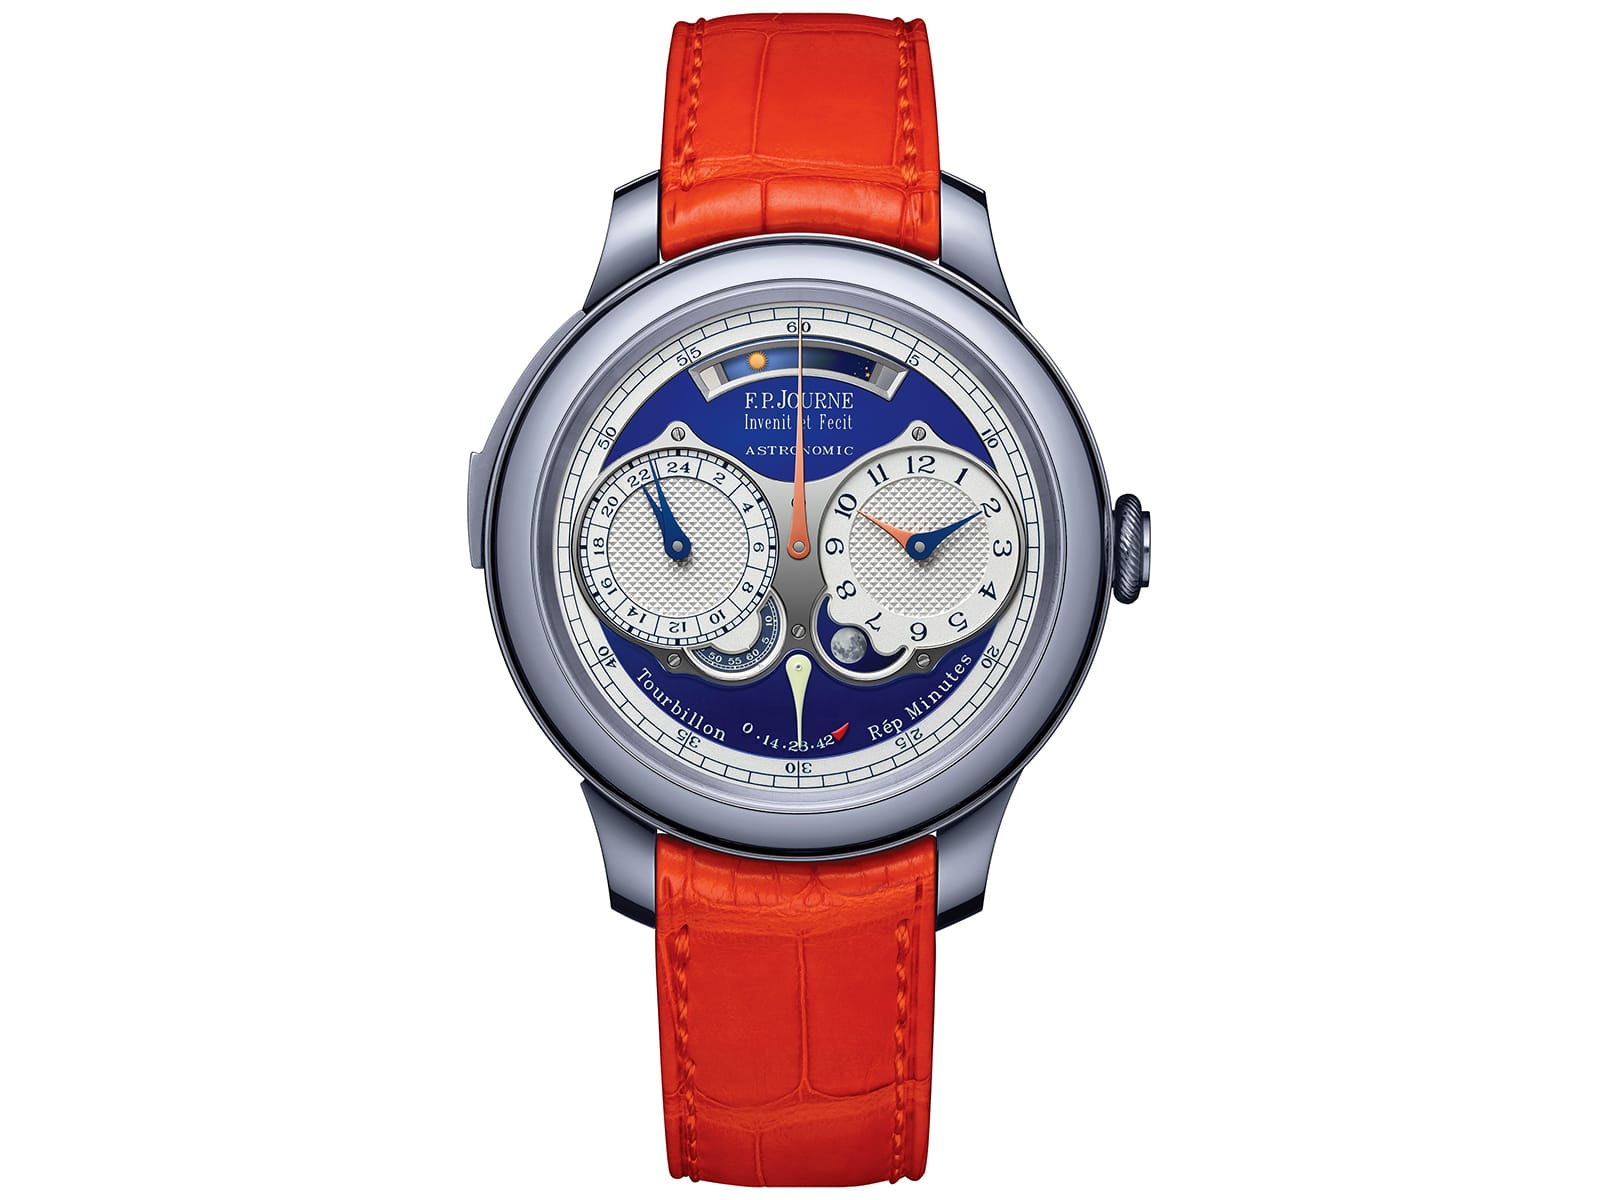 f-p-journe-astronomic-blue.jpg